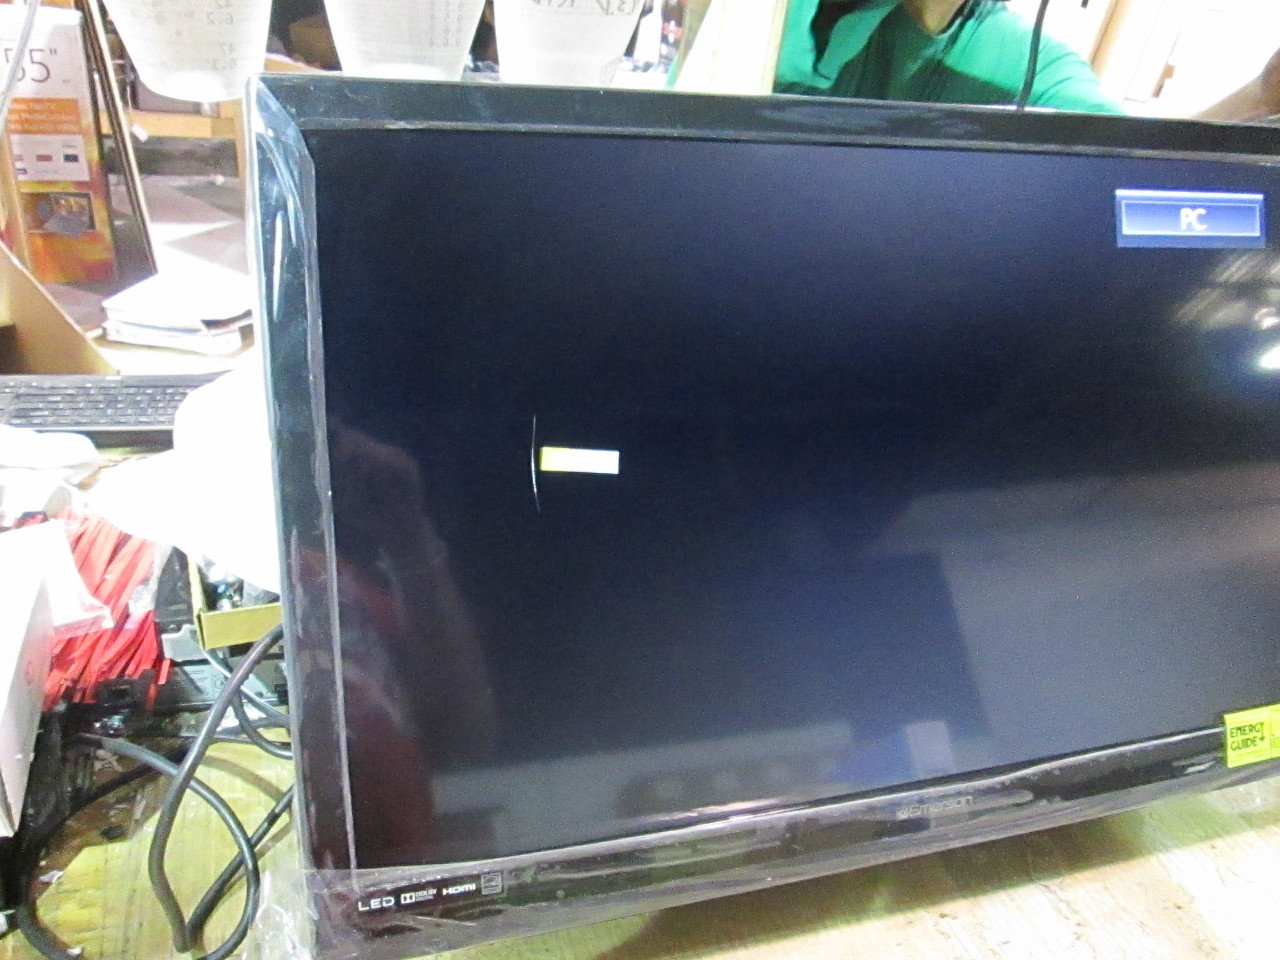 Emerson 32 Inch Led Tv Related Keywords & Suggestions - Emerson 32